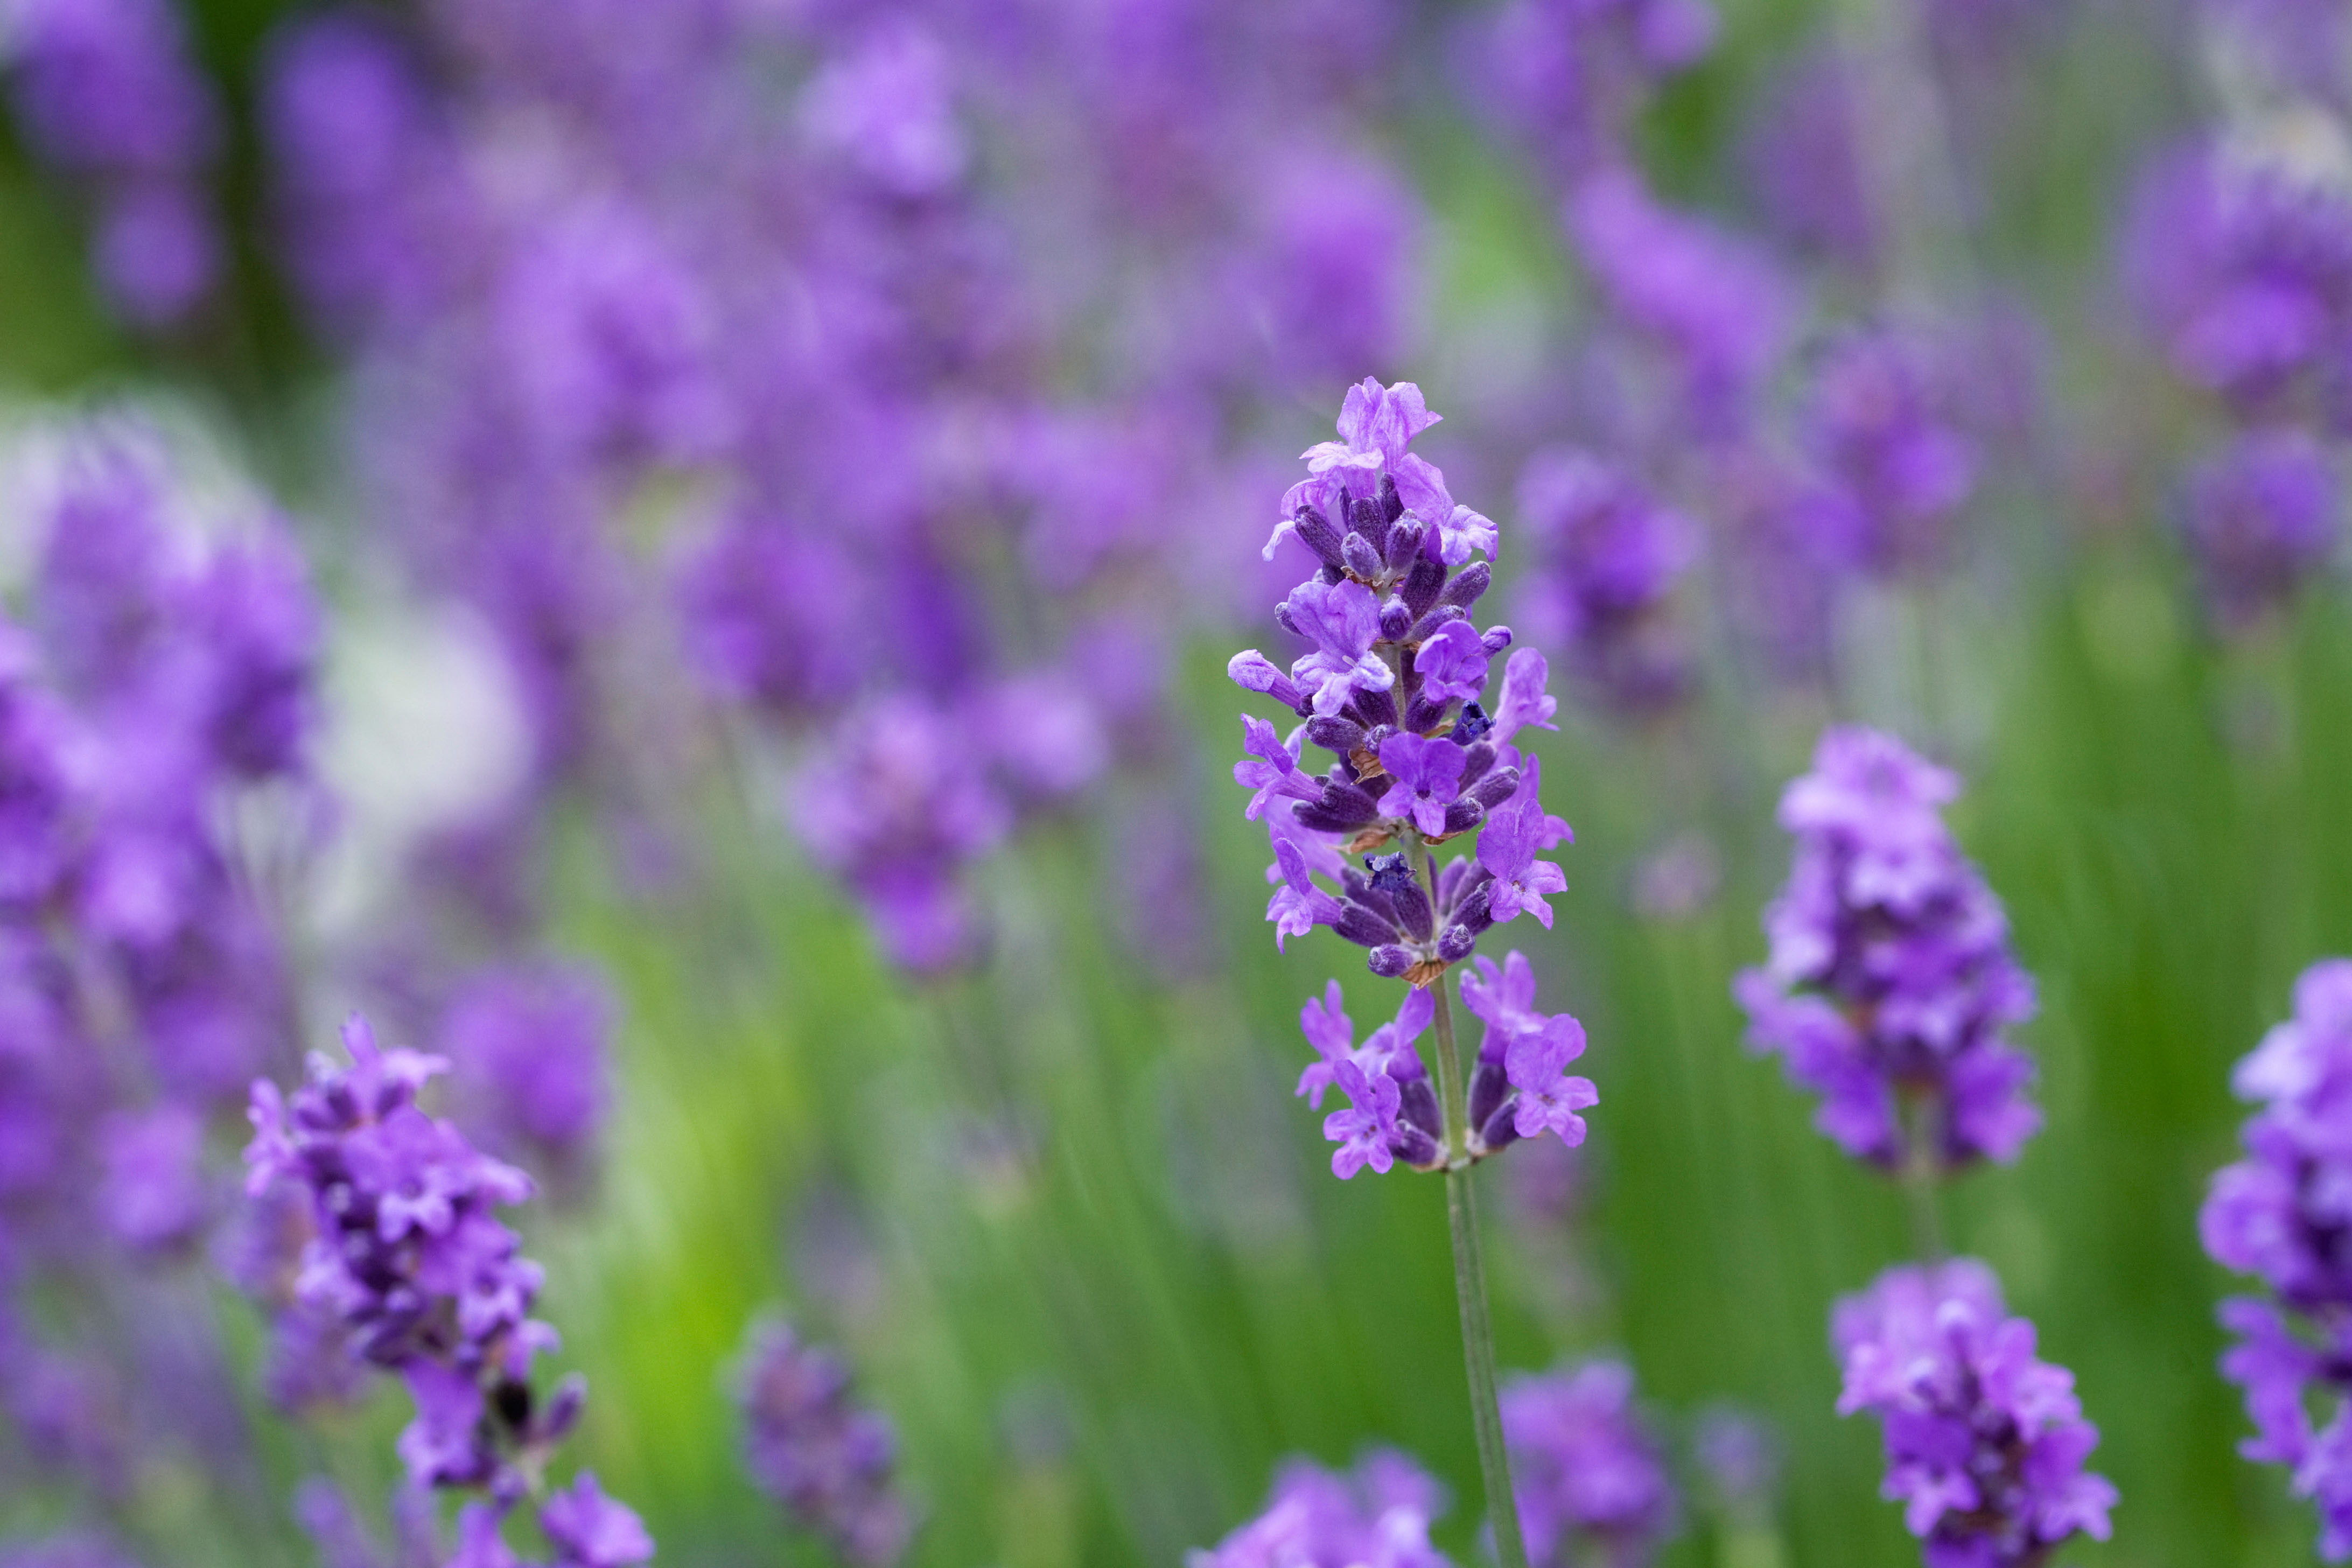 Lavender can help to ease symptoms of anxiety, which is one of the most common mental health conditions